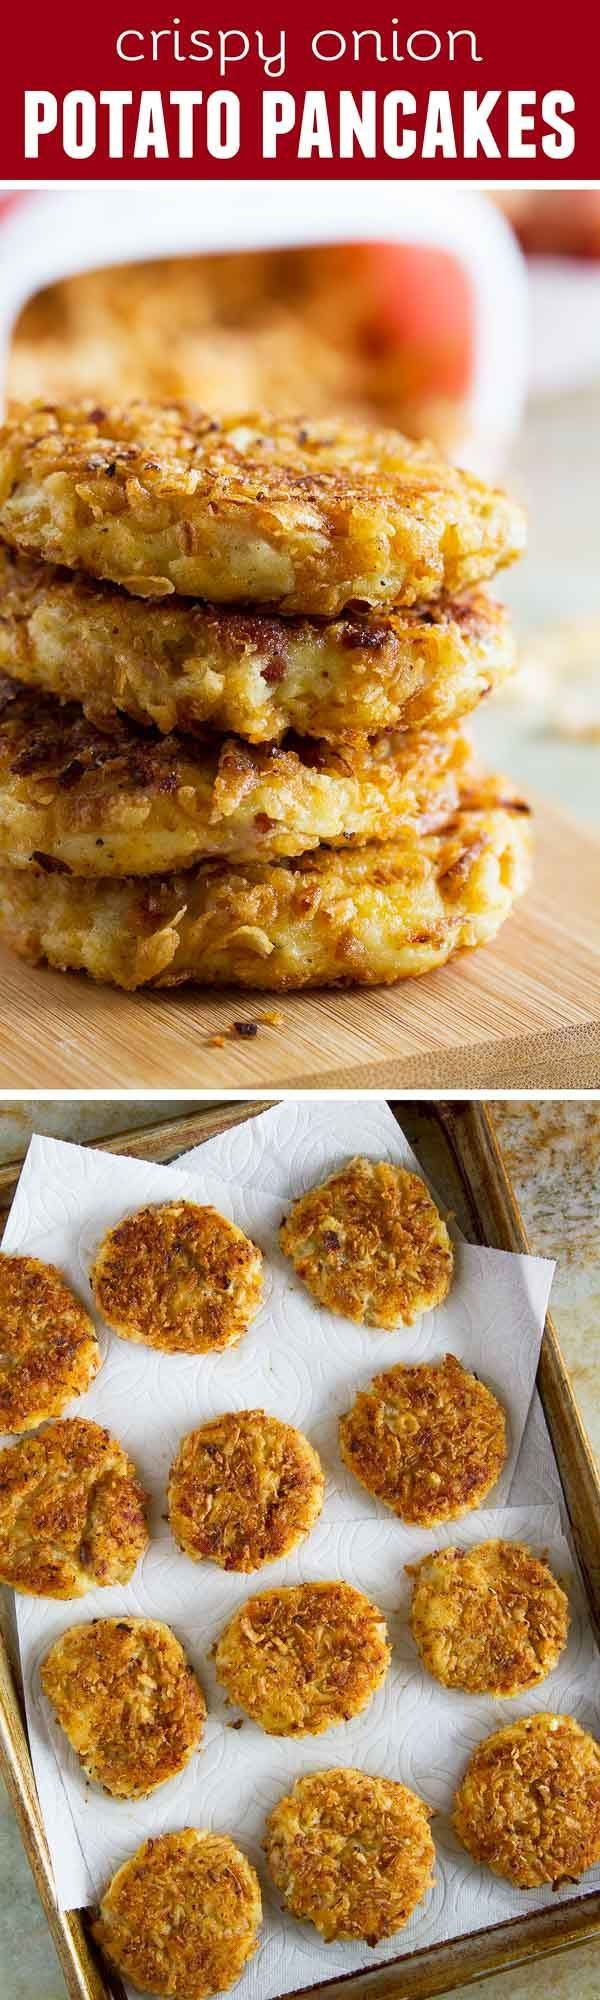 37 best polish recipes images on pinterest polish recipes polish perfect for a special holiday breakfast these crispy onion potato pancakes are crispy on the forumfinder Images